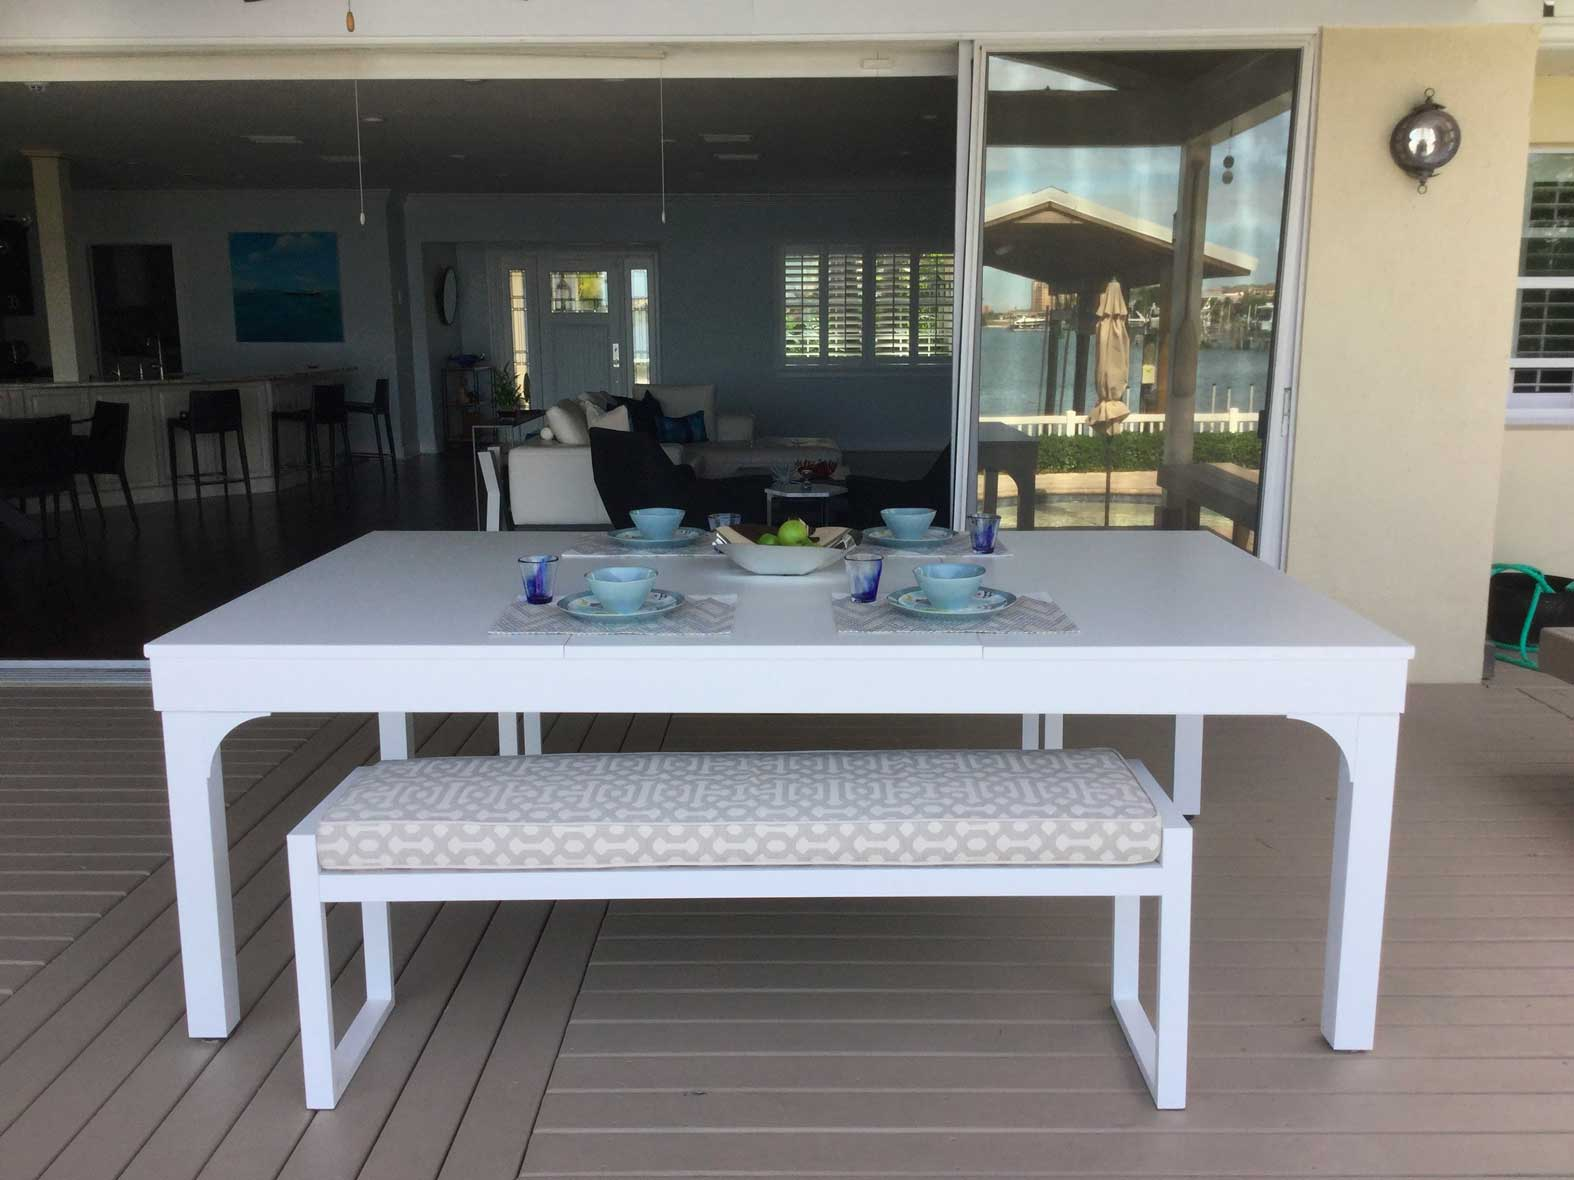 Outdoor pool table converted into dining table with R&R Outdoors dining conversion top